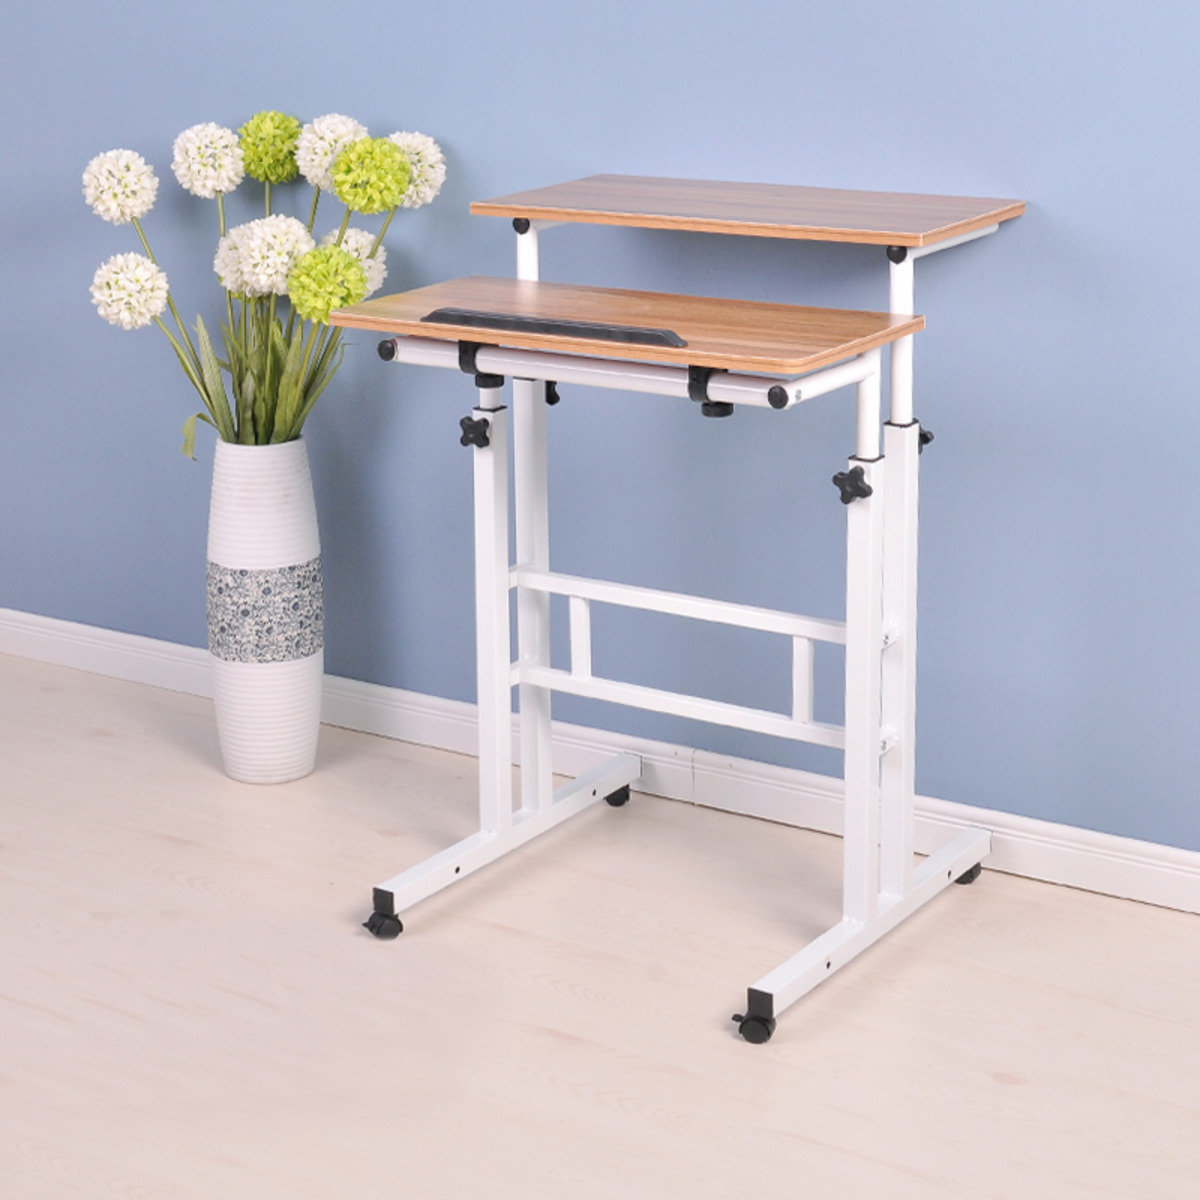 on w aliexpress and free com goplus table computer workstation home laptop wholesale desks expandable corner wood get officem shaped desk buy standing shipping modern pc l